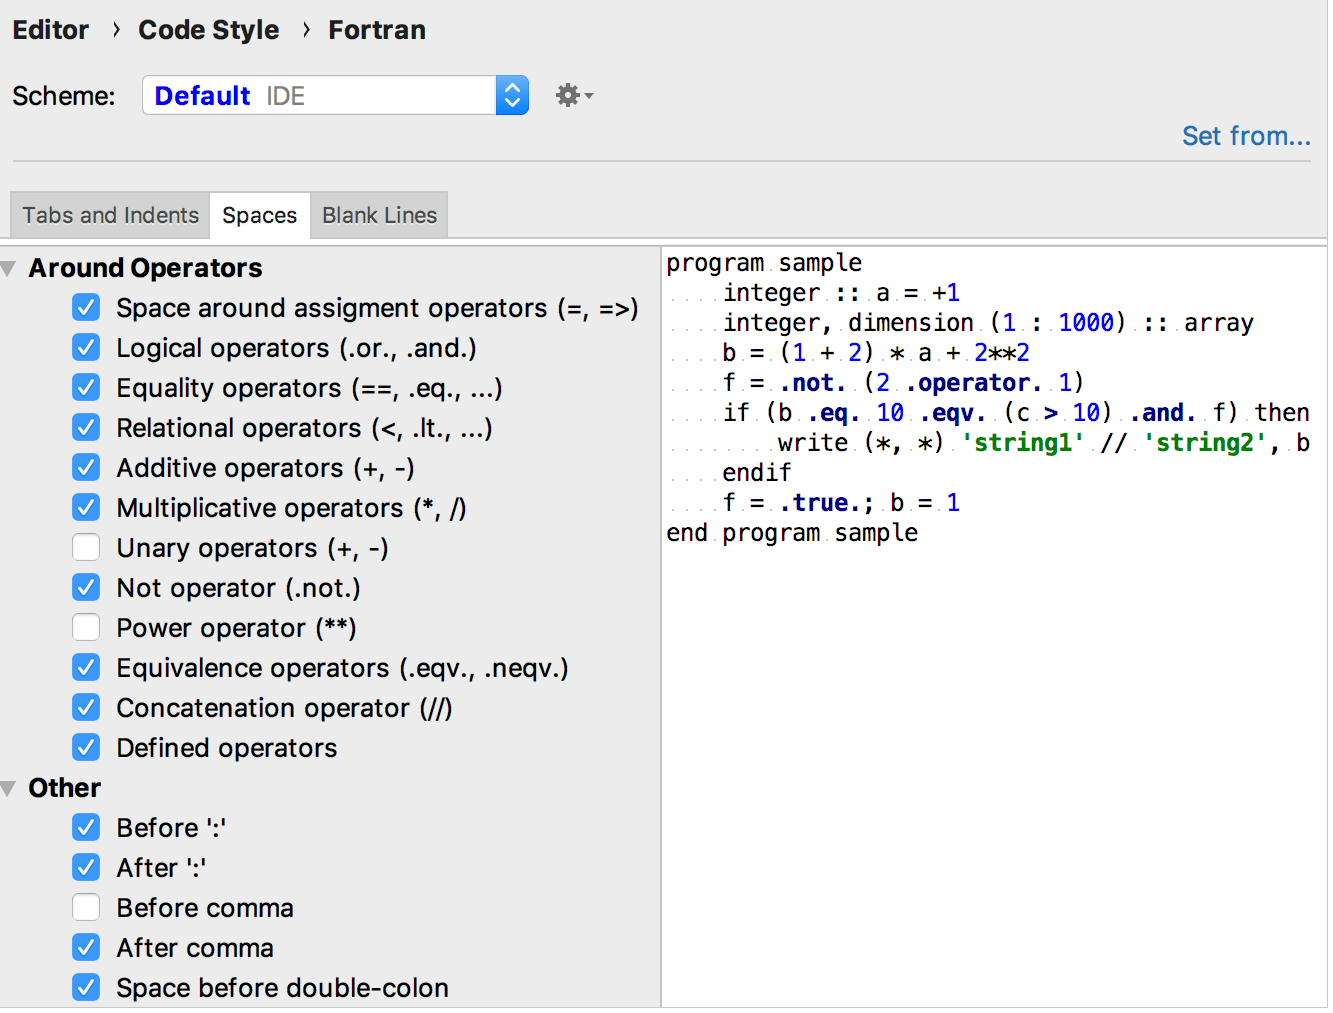 Code styles for Fortran